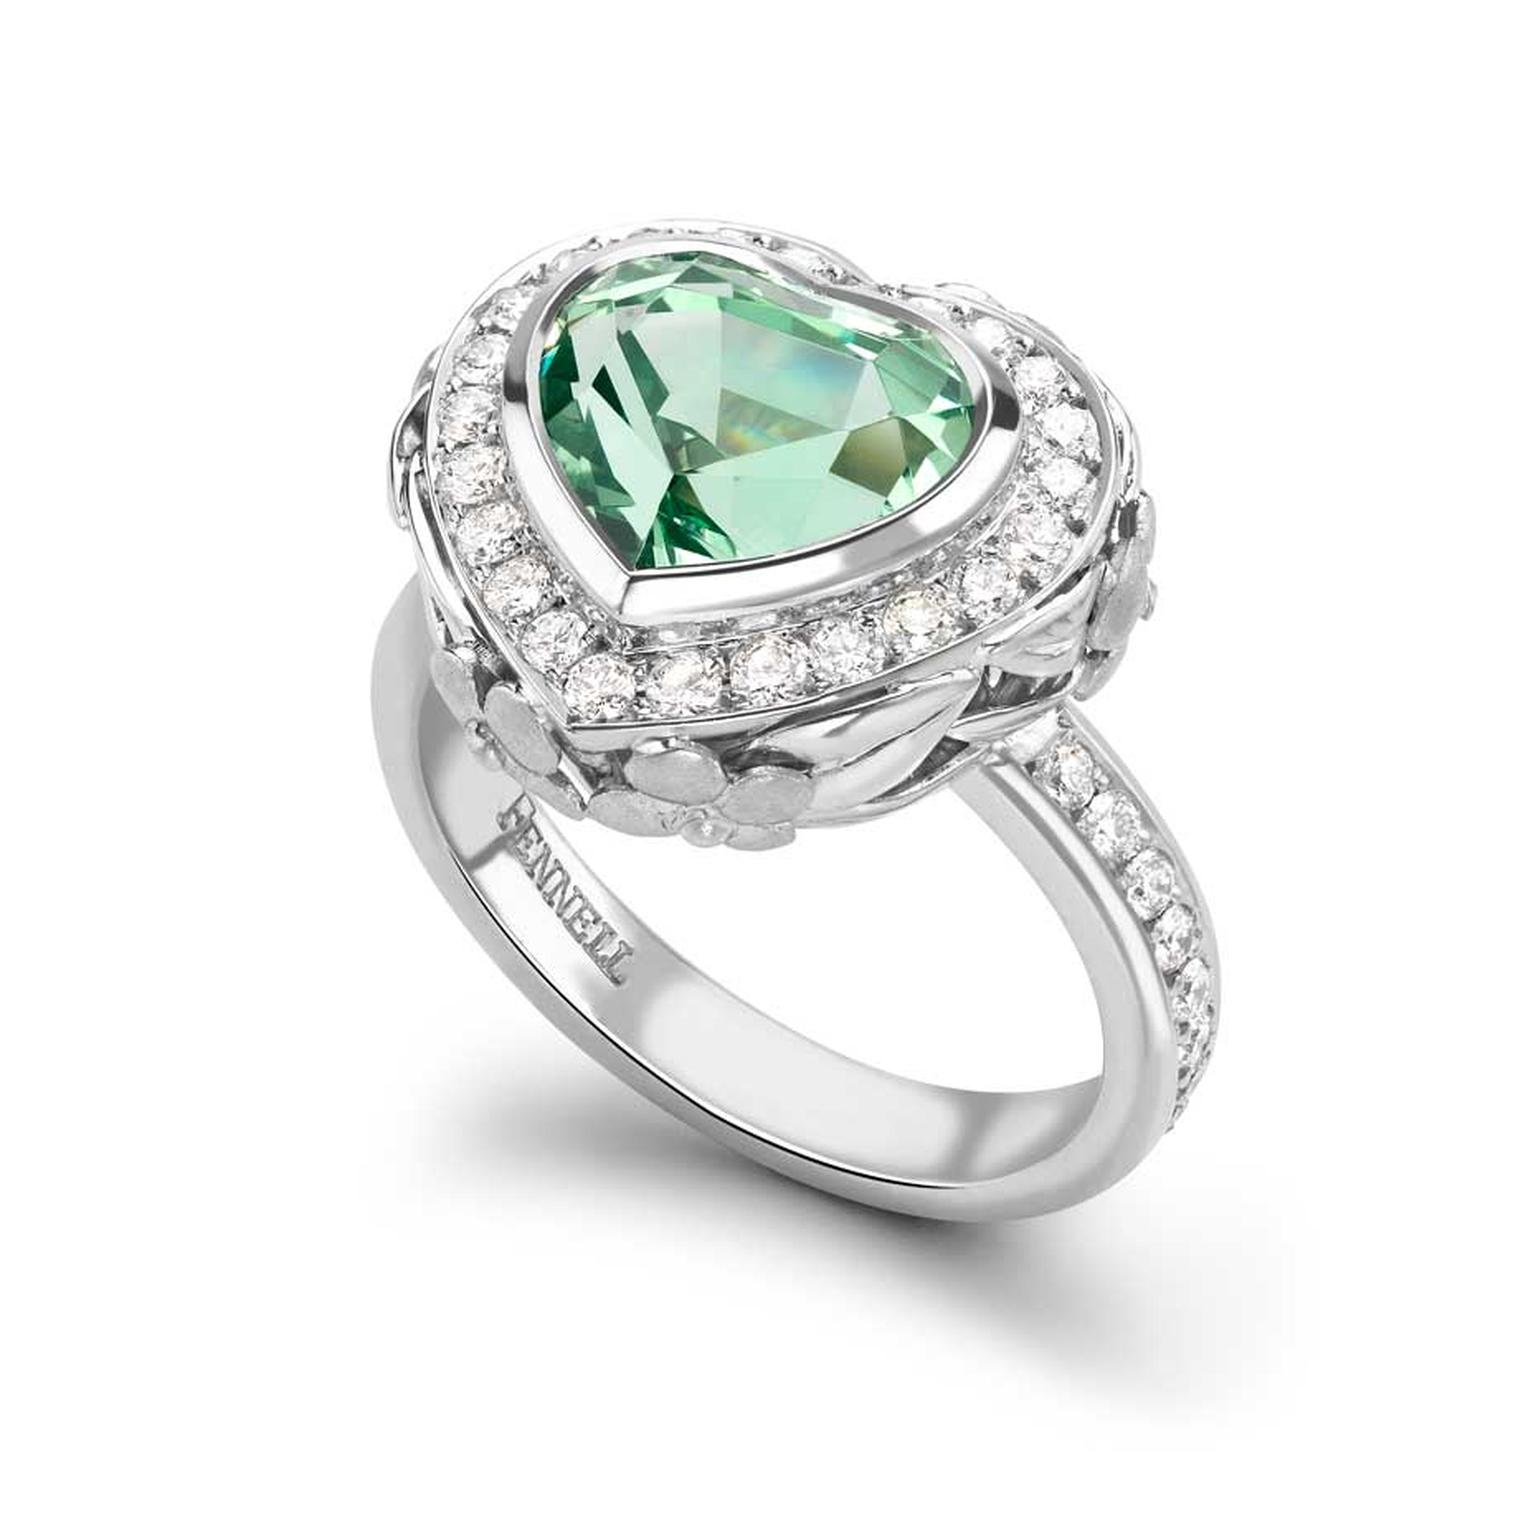 Theo Fennell tsavorite garnet ring in white gold, set with a 4.30ct heart-cut tsavorite garnet and pavé diamonds.